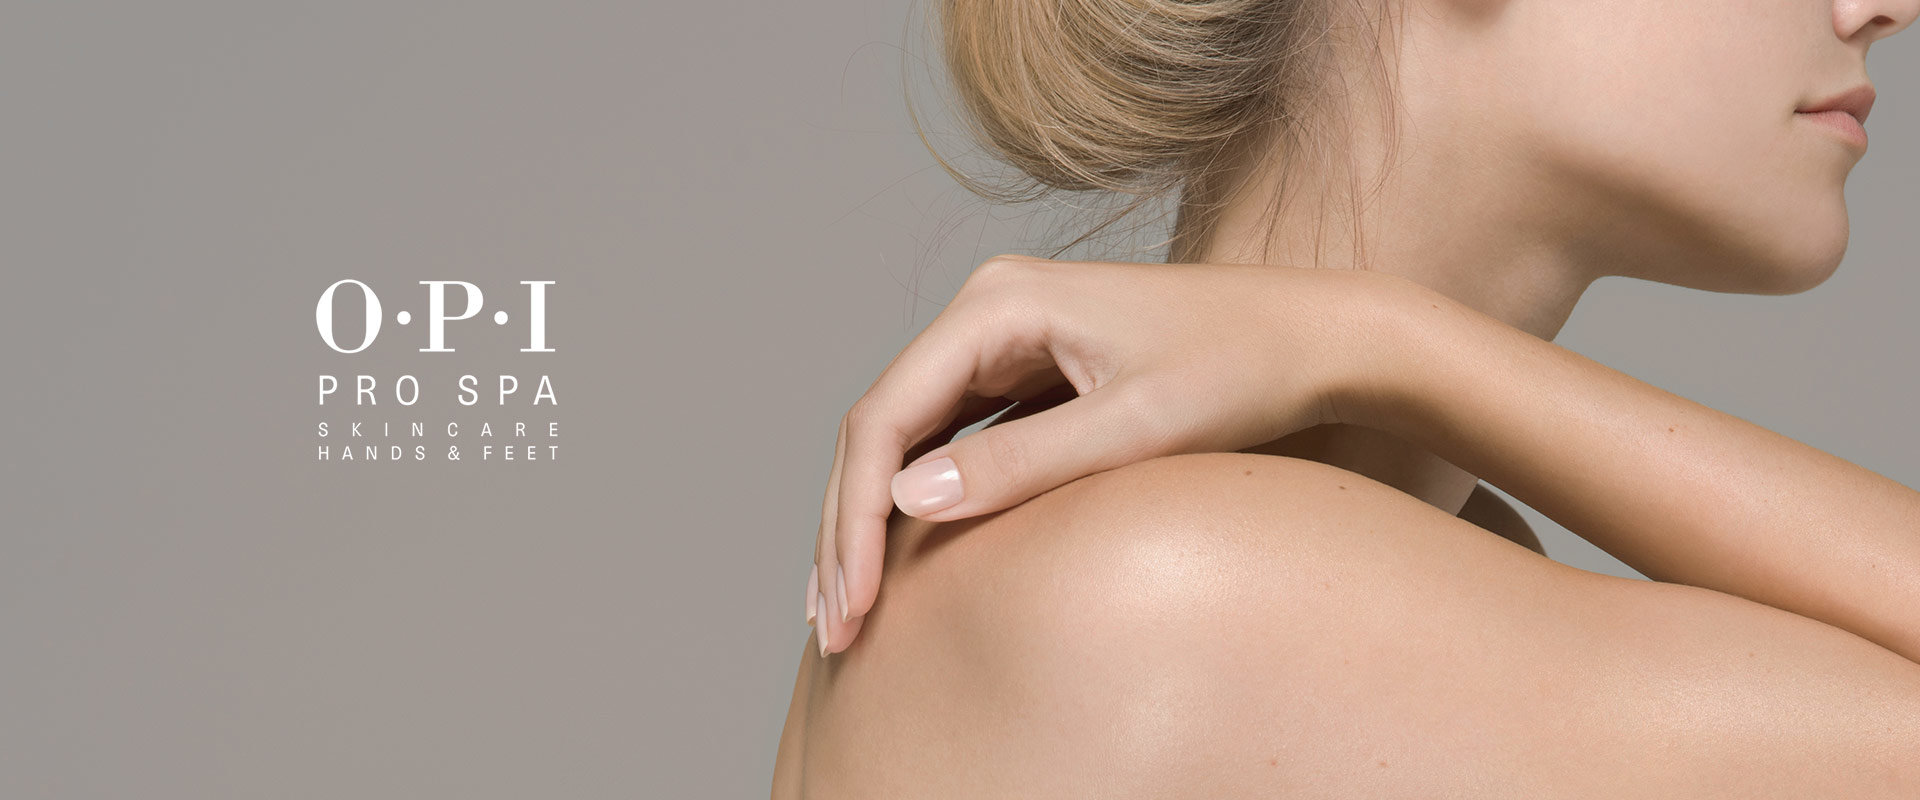 ProSpa Collections Banner Image